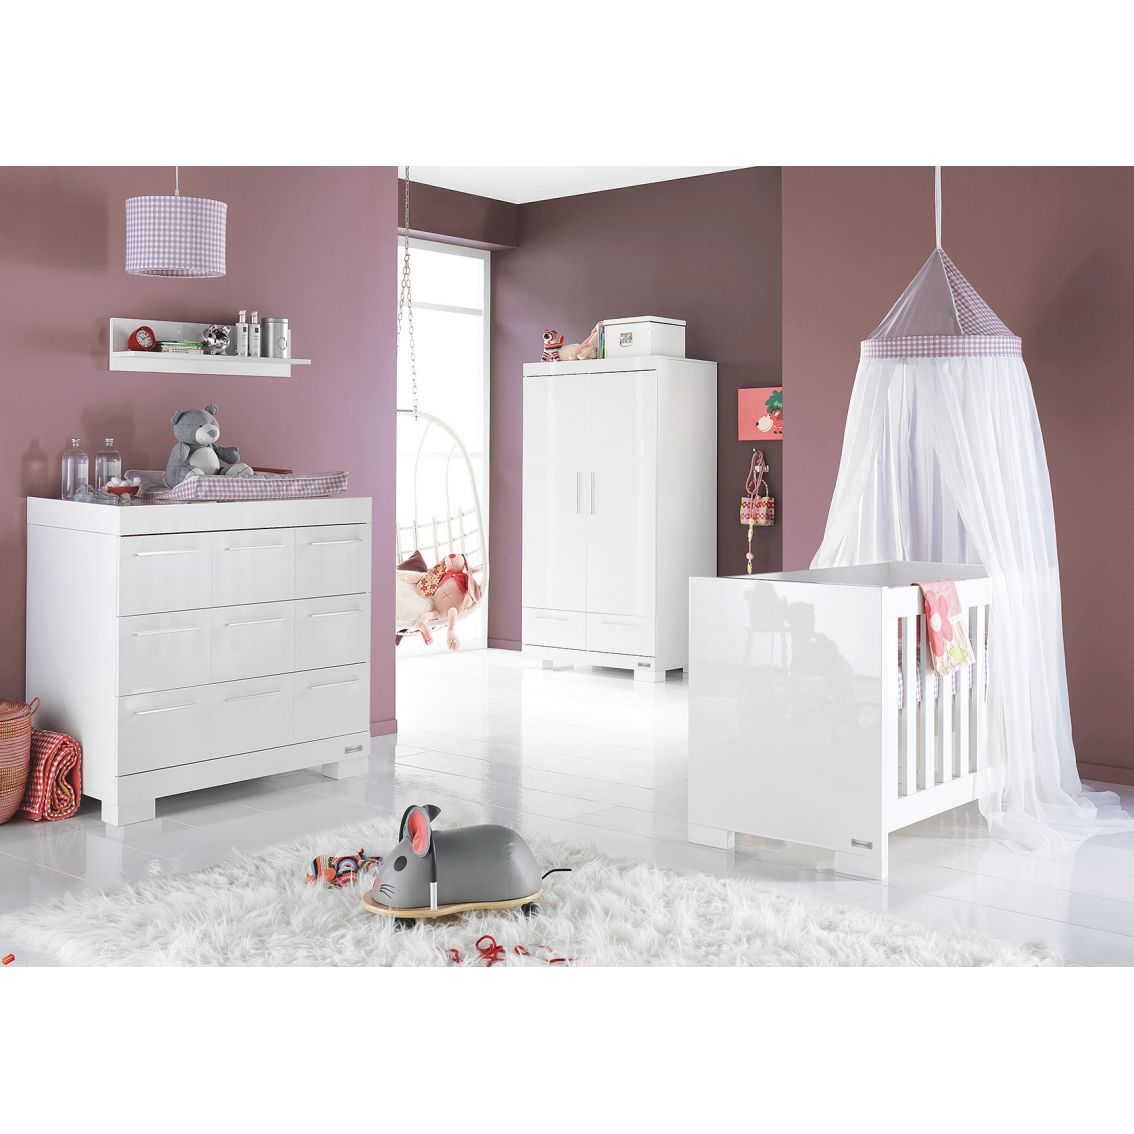 Babystyle aspen 3 piece nursery furniture set for Baby bedroom furniture